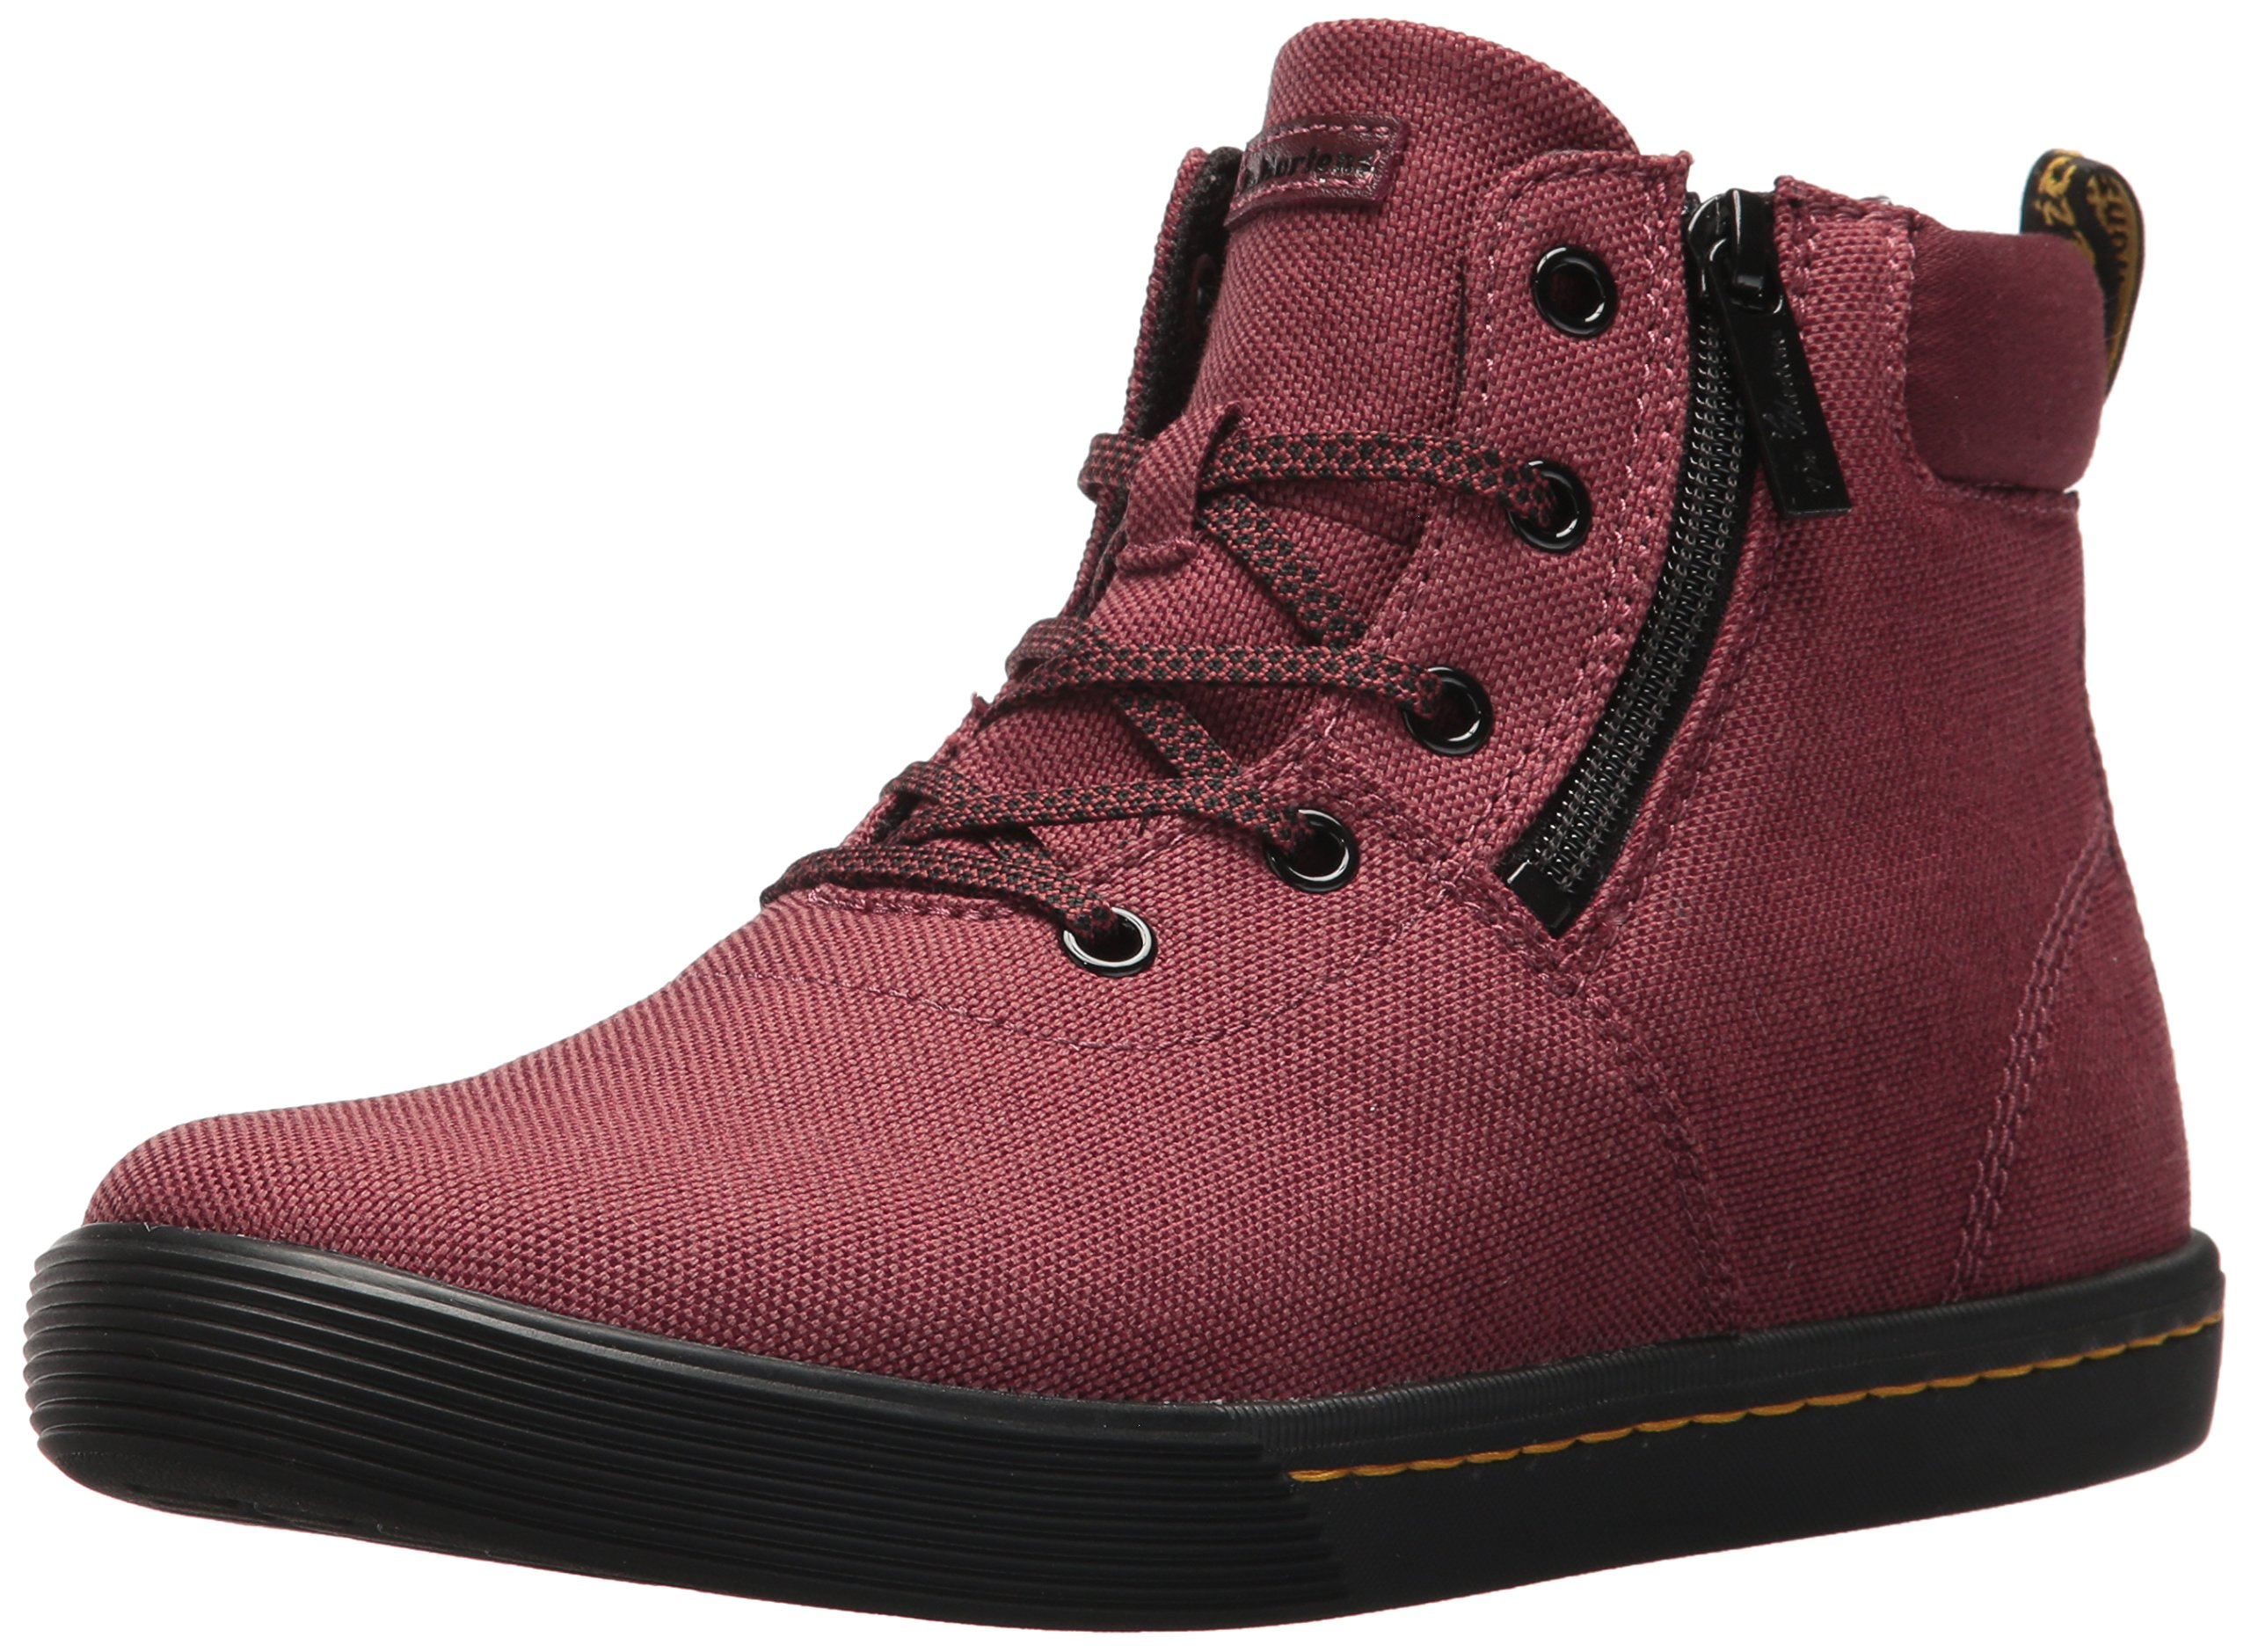 Dr. Martens Women's Maegley Fashion Boot, Cherry Red Woven Textile+Fine Canvas, 5 Medium UK (7 US) by Dr. Martens (Image #1)